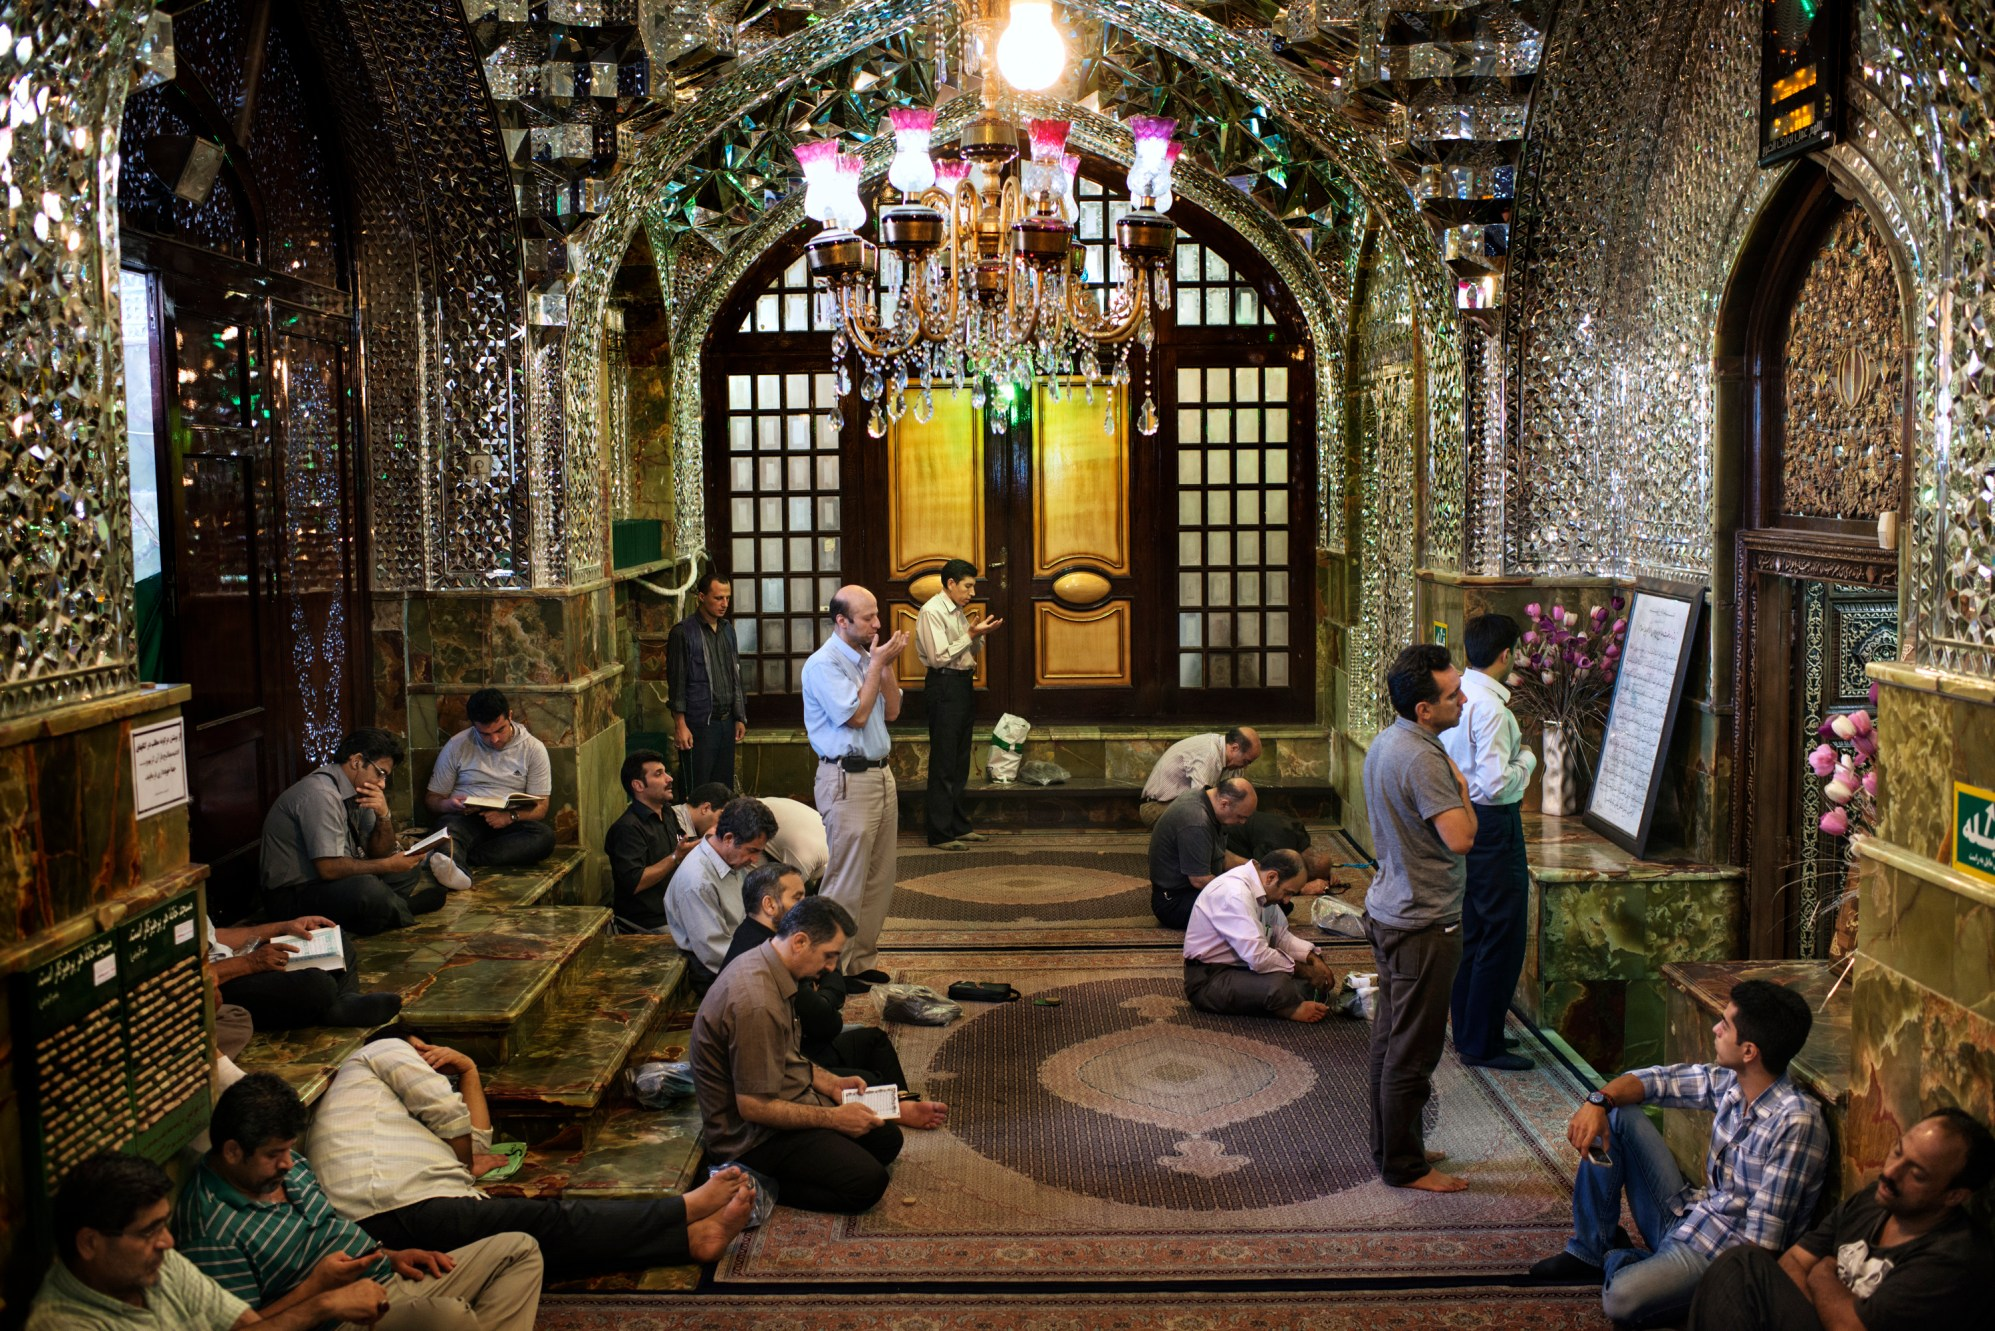 Prayers in the Imamzadeh Saleh mosque in Tajrish, Tehran.